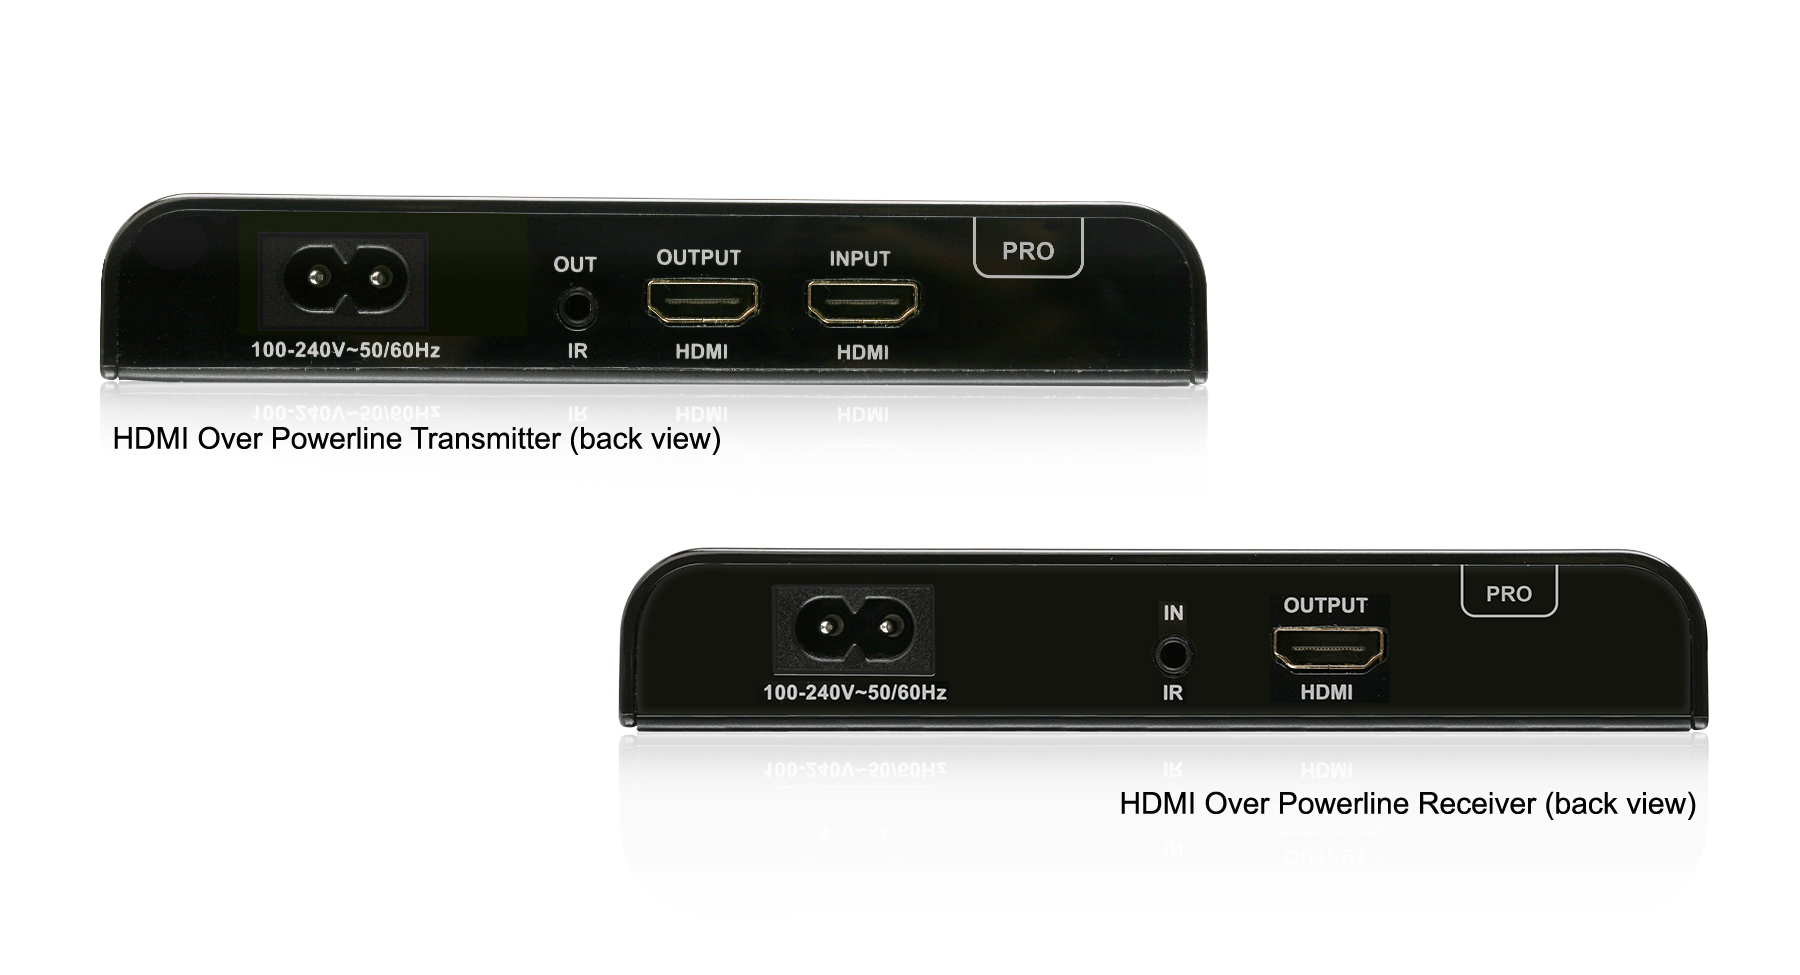 Iogear Gplhdprok2 Hdmi Over Powerline Pro Kit With 1 Additional Simple Ir Audio Transmitter And Receiver Circuit